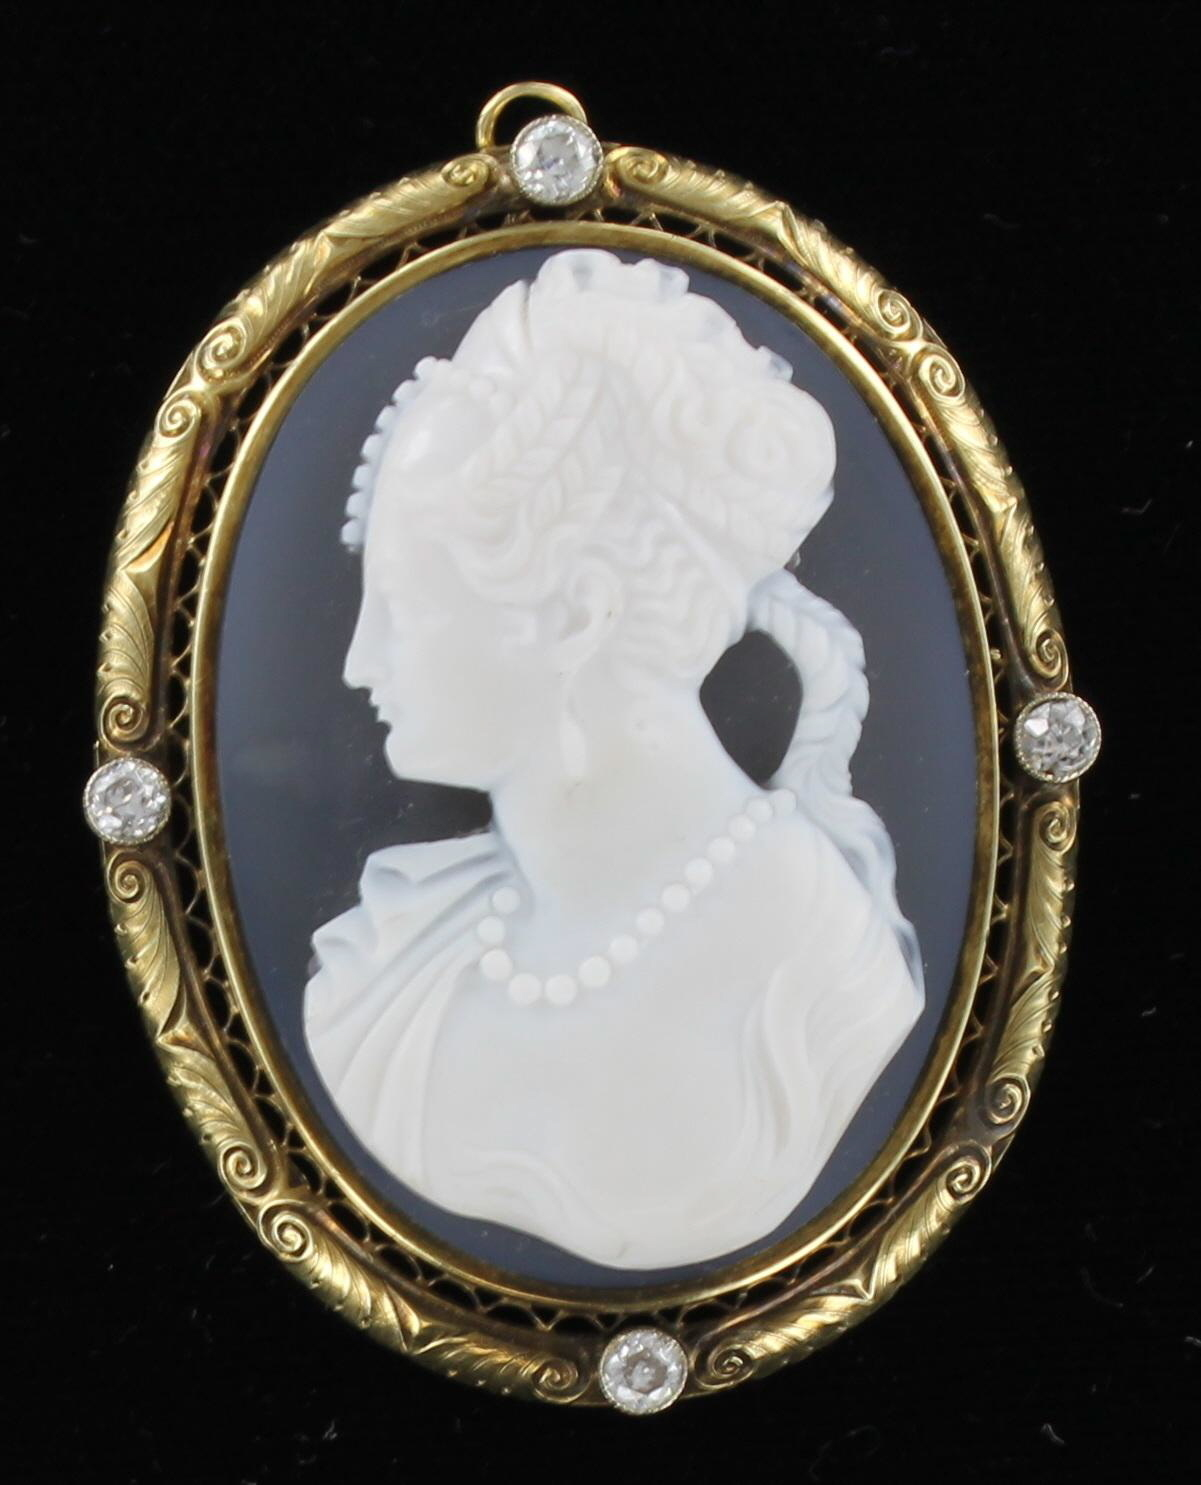 14KT AGATE & SHELL CAMEO WITH DIAMONDS 1900